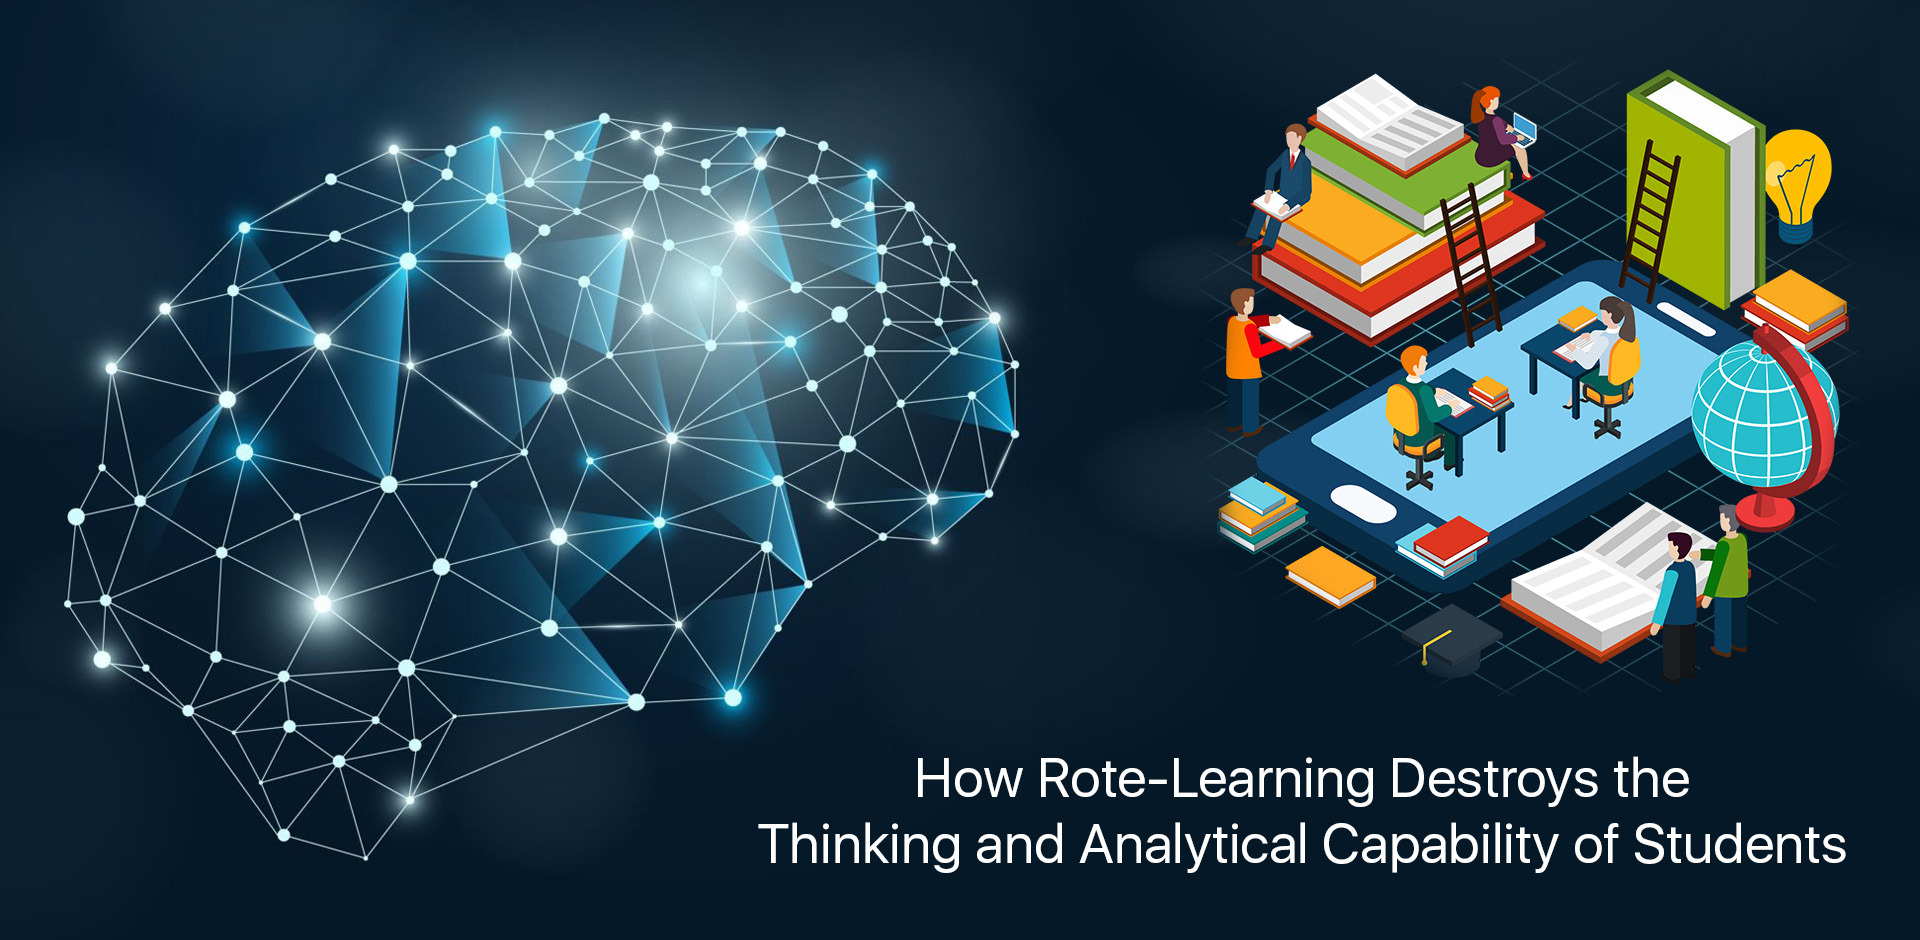 How Rote-Learning Destroys the Thinking and Analytical Capability of Students